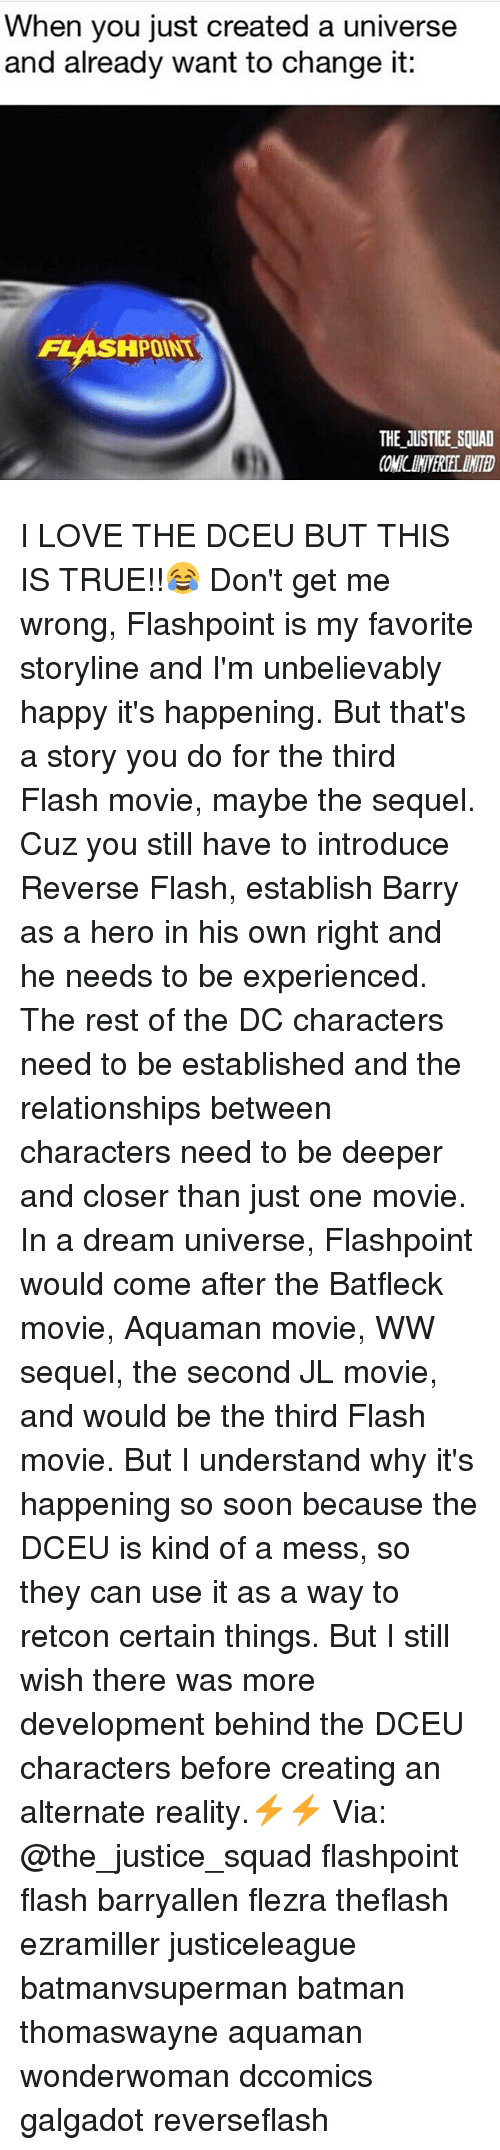 A Dream, Batman, and Love: When you just created a universe  and already want to change it:  FLASHPOINT  THE JUSTICE SQUAD I LOVE THE DCEU BUT THIS IS TRUE!!😂 Don't get me wrong, Flashpoint is my favorite storyline and I'm unbelievably happy it's happening. But that's a story you do for the third Flash movie, maybe the sequel. Cuz you still have to introduce Reverse Flash, establish Barry as a hero in his own right and he needs to be experienced. The rest of the DC characters need to be established and the relationships between characters need to be deeper and closer than just one movie. In a dream universe, Flashpoint would come after the Batfleck movie, Aquaman movie, WW sequel, the second JL movie, and would be the third Flash movie. But I understand why it's happening so soon because the DCEU is kind of a mess, so they can use it as a way to retcon certain things. But I still wish there was more development behind the DCEU characters before creating an alternate reality.⚡️⚡️ Via: @the_justice_squad flashpoint flash barryallen flezra theflash ezramiller justiceleague batmanvsuperman batman thomaswayne aquaman wonderwoman dccomics galgadot reverseflash